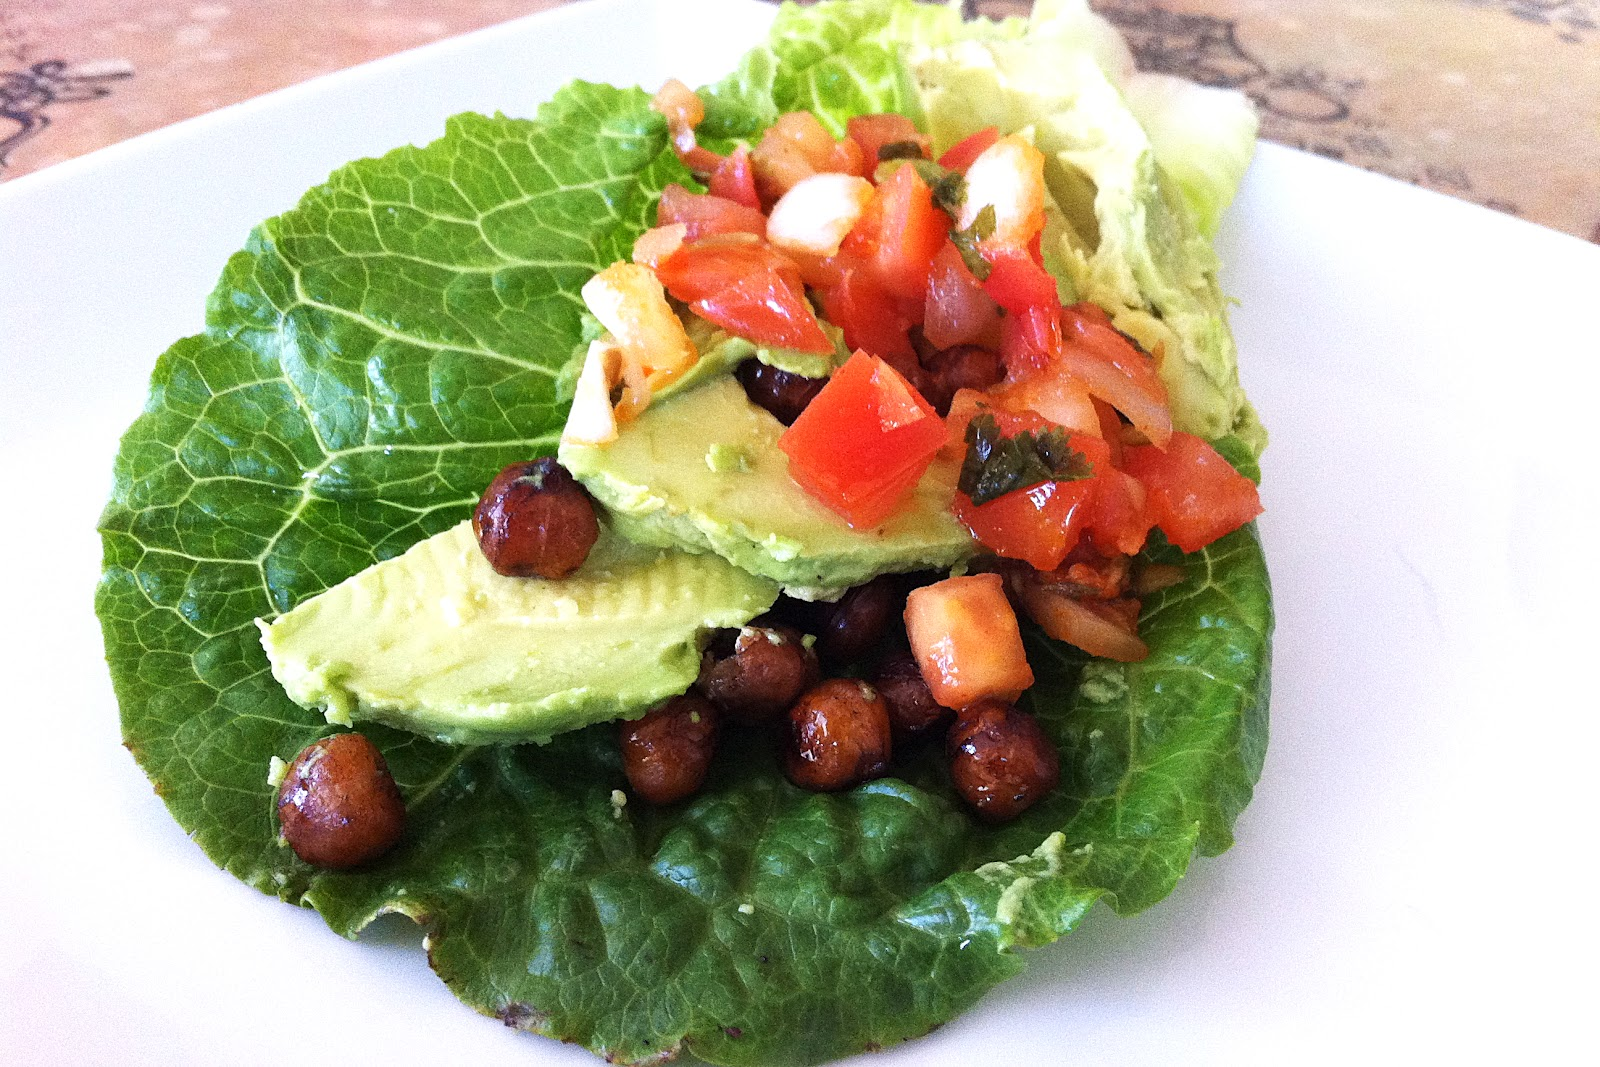 Made to Create: Balsamic Roasted Chickpea Salad & Wrap